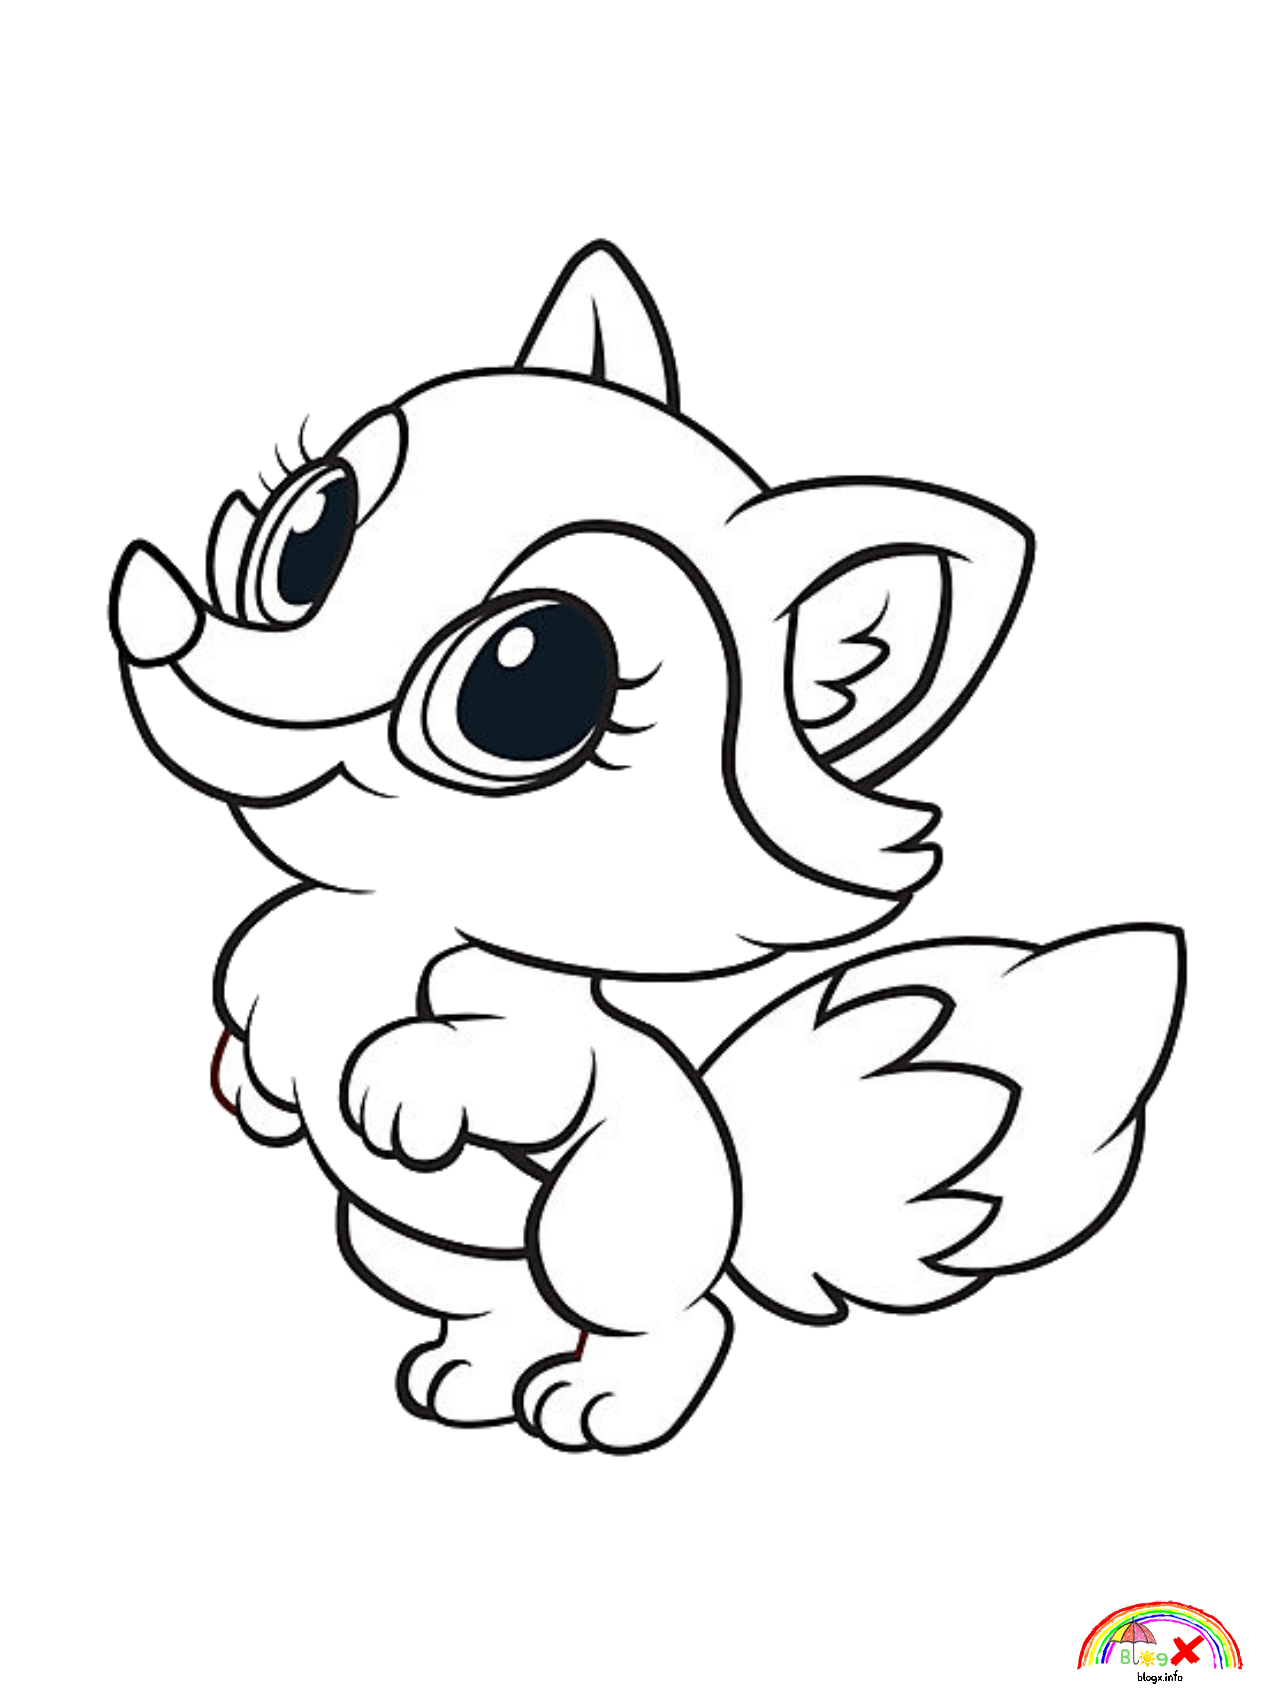 Pin By Nanci On Dibujar Animalitos Fox Coloring Page Cute Coloring Pages Animal Coloring Pages